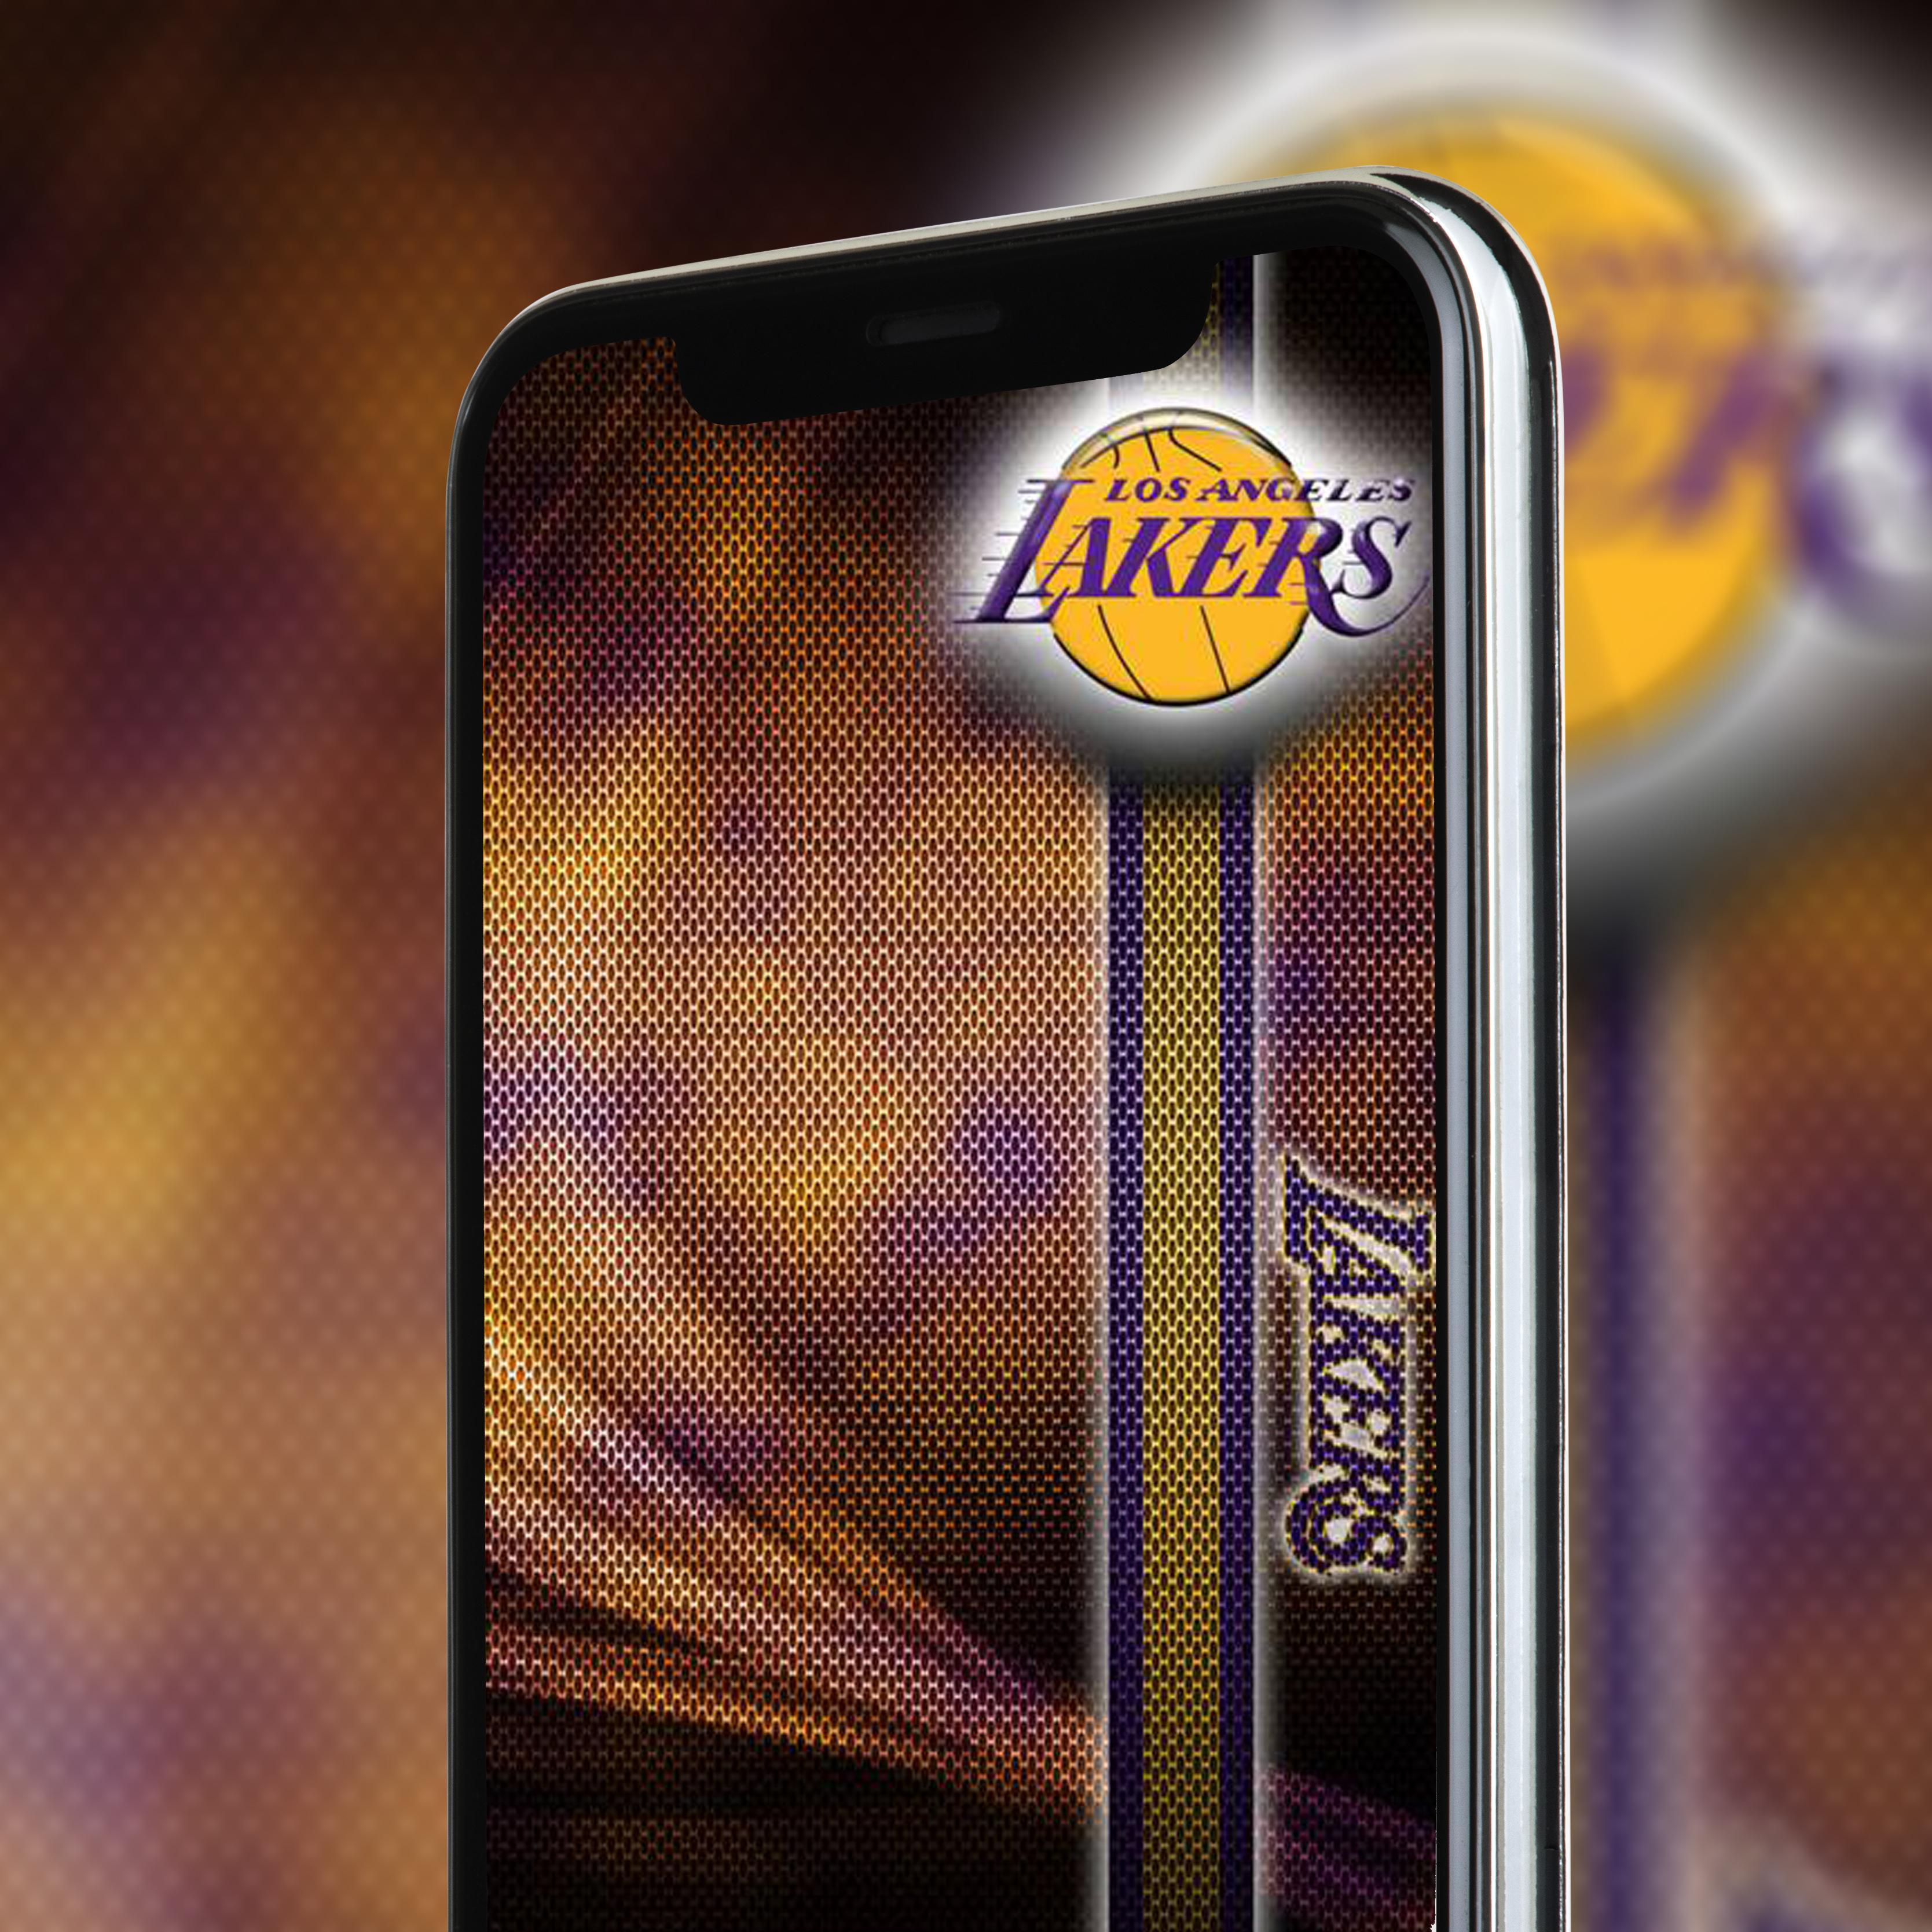 Nba Wallpaper Hd 2020 Basketball Images For Android Apk